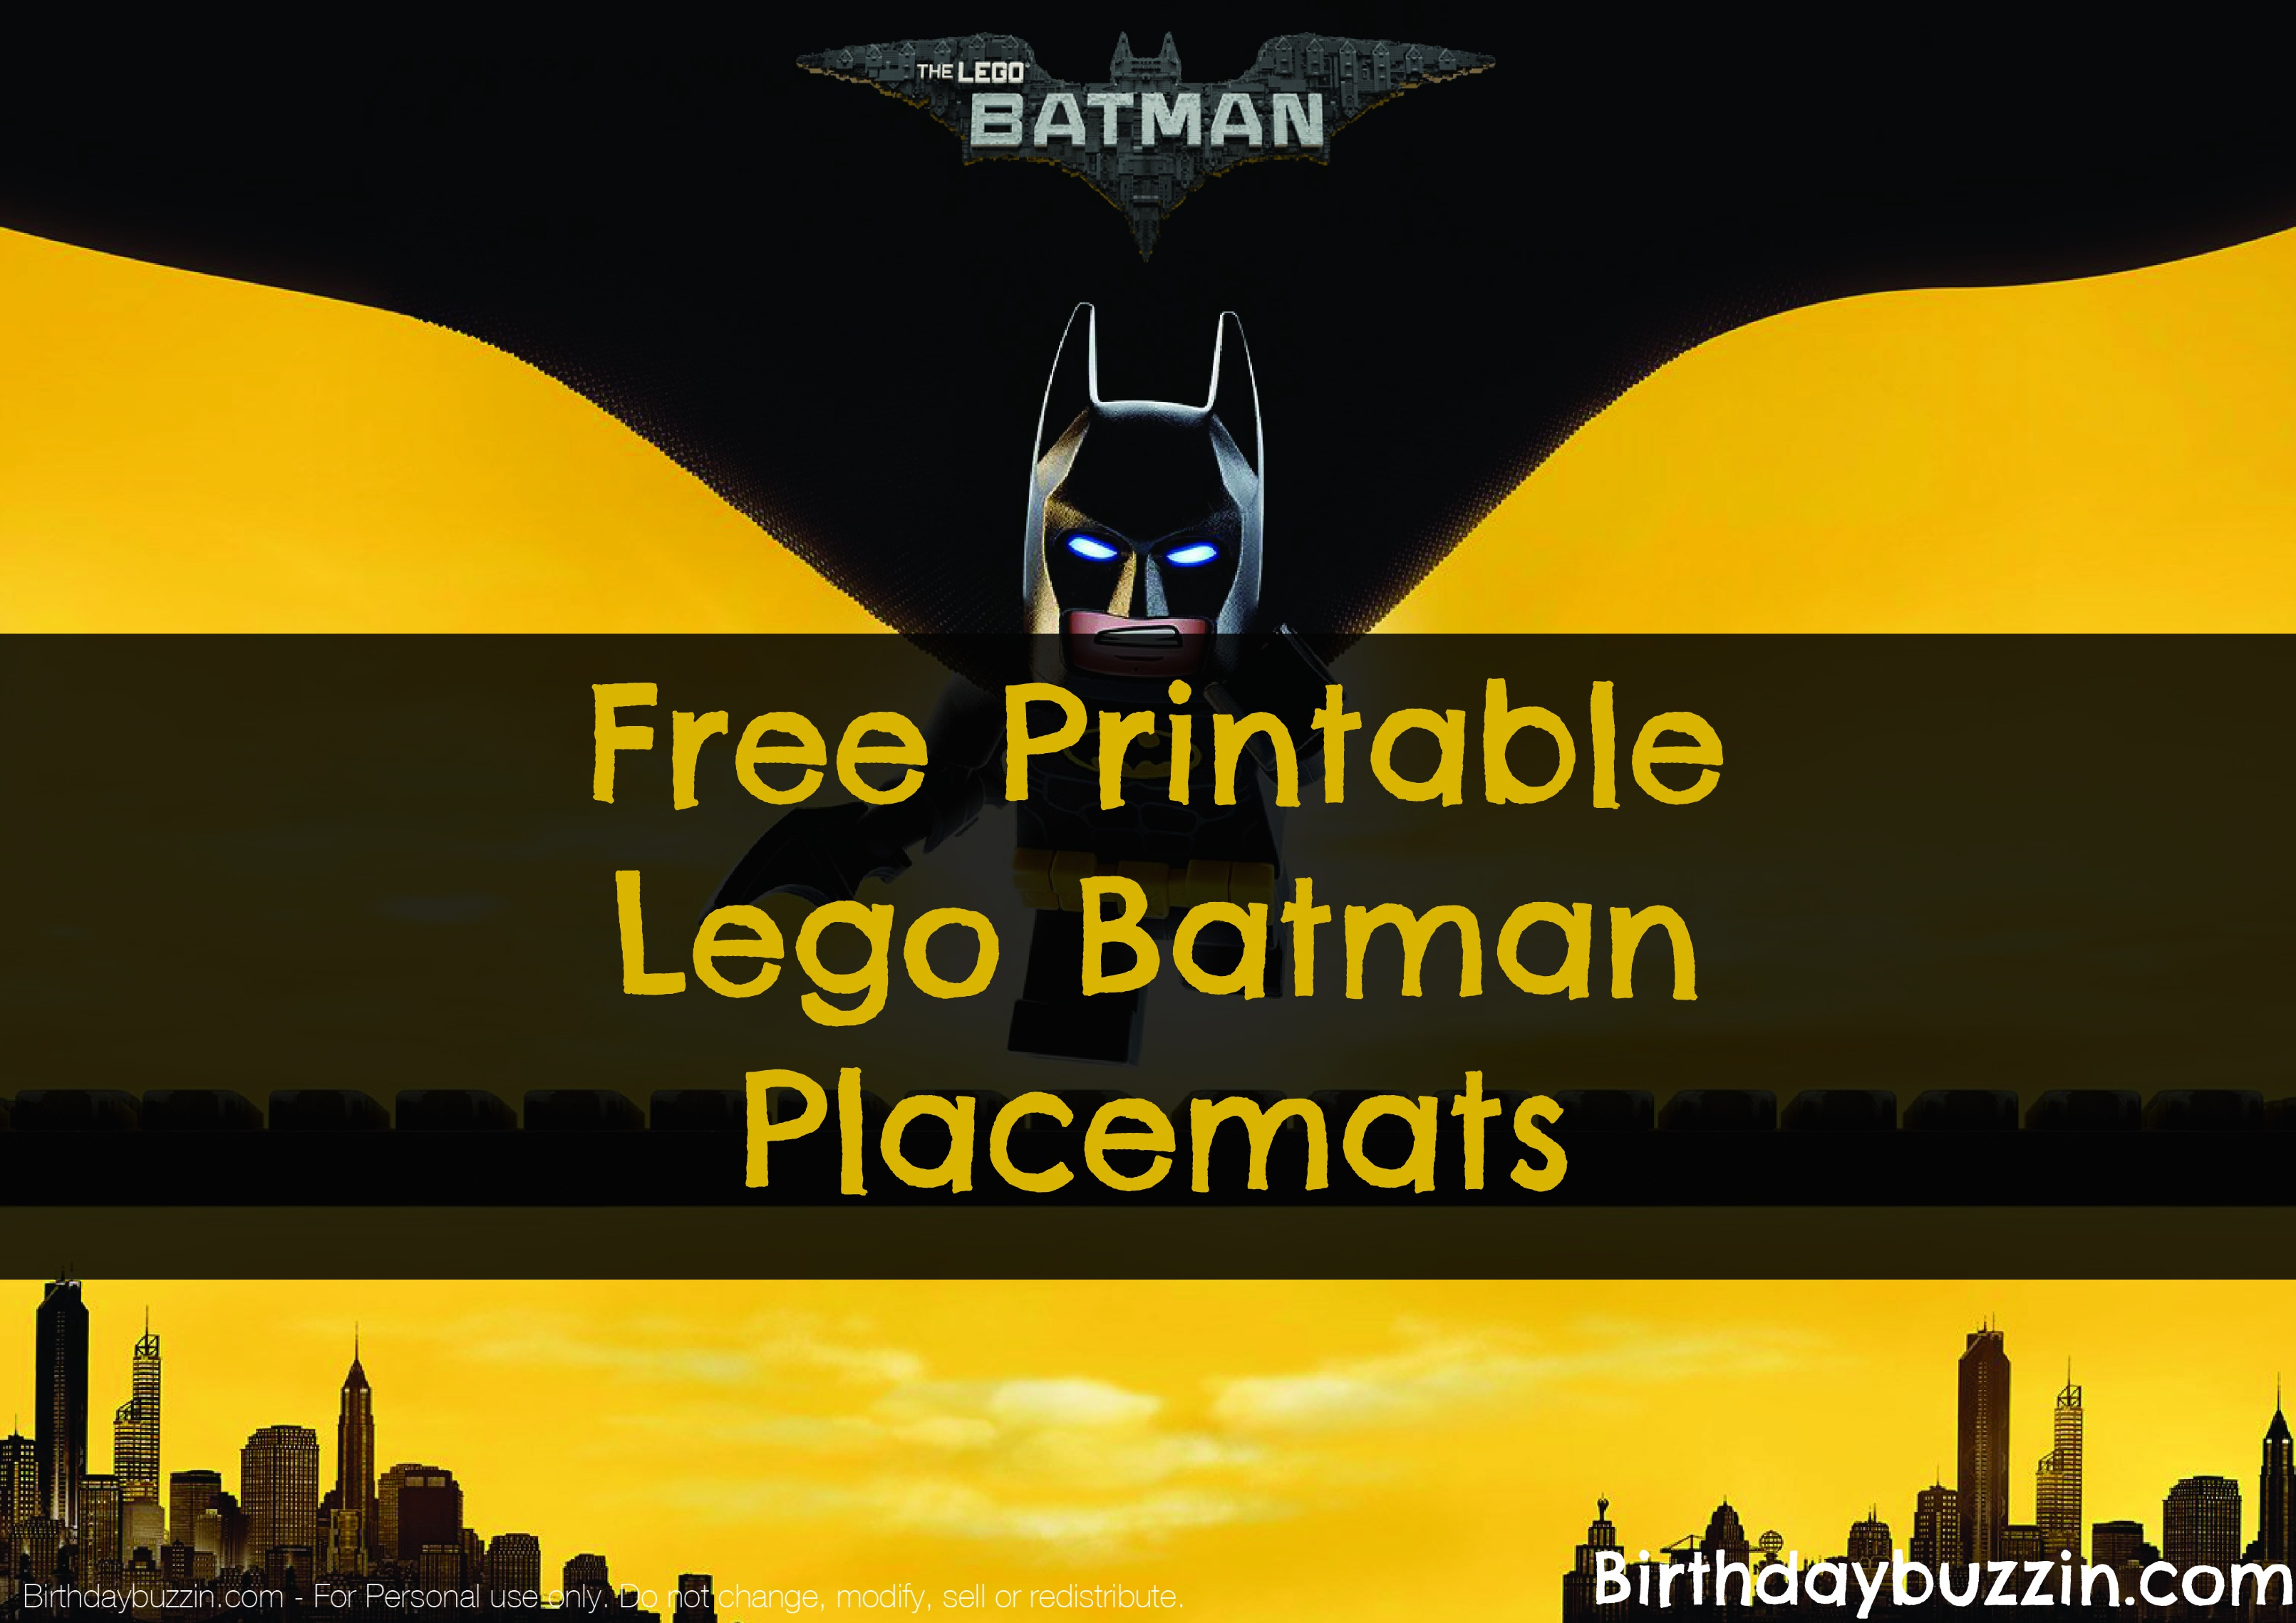 graphic about Lego Batman Printable referred to as Free of charge printable Lego Batman Placemats Birthday Buzzin